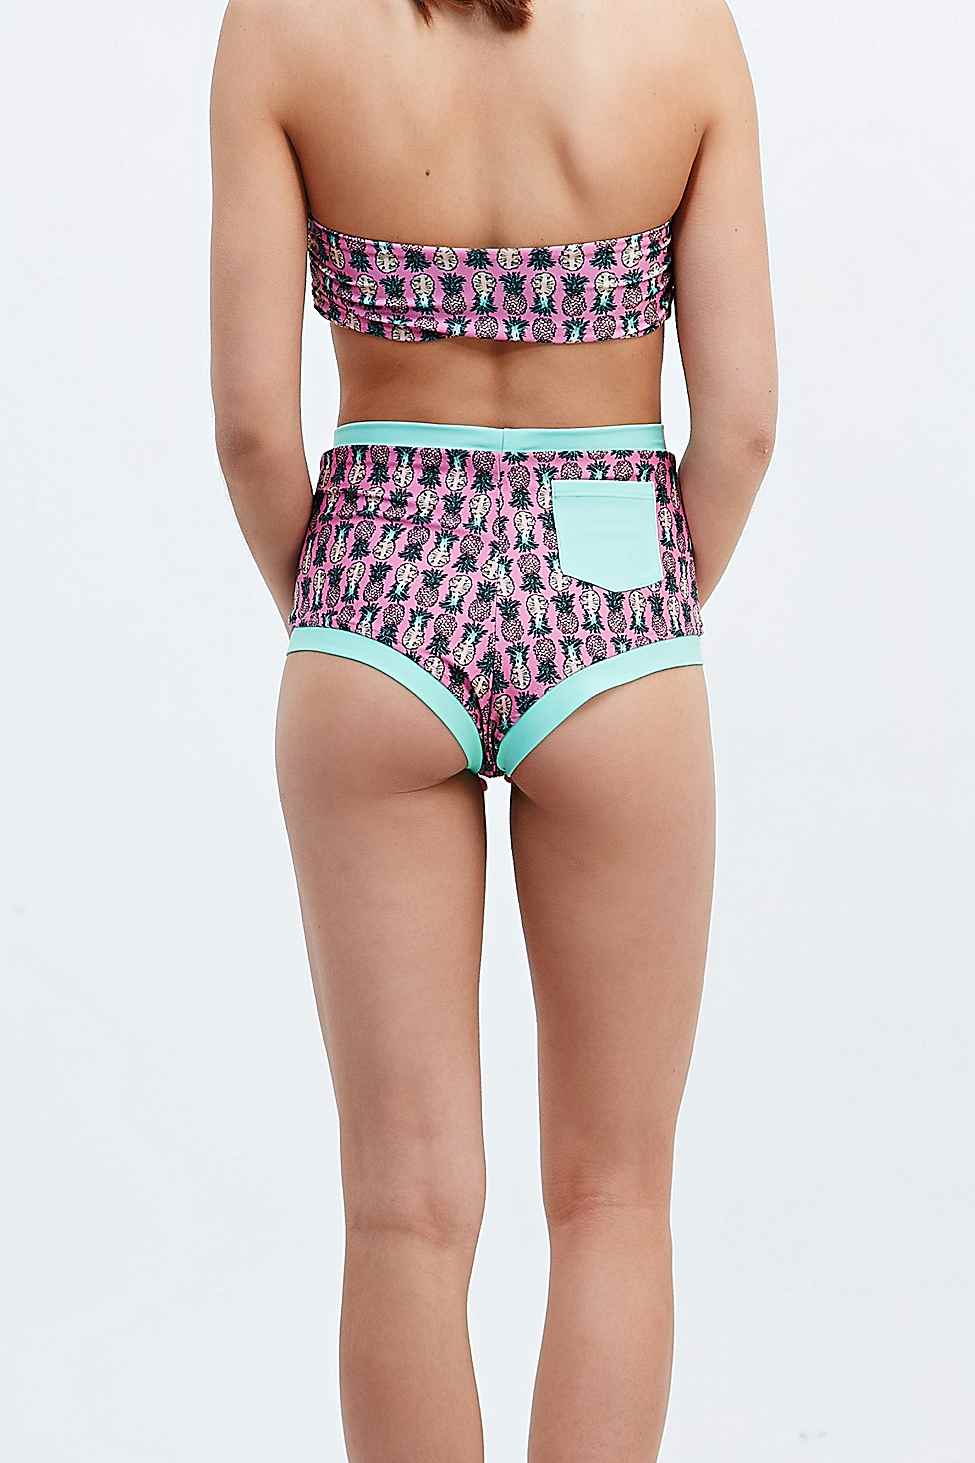 0d60a0530ca0c Gallery. Previously sold at: Urban Outfitters · Women's High Waisted Bikini  Bottoms